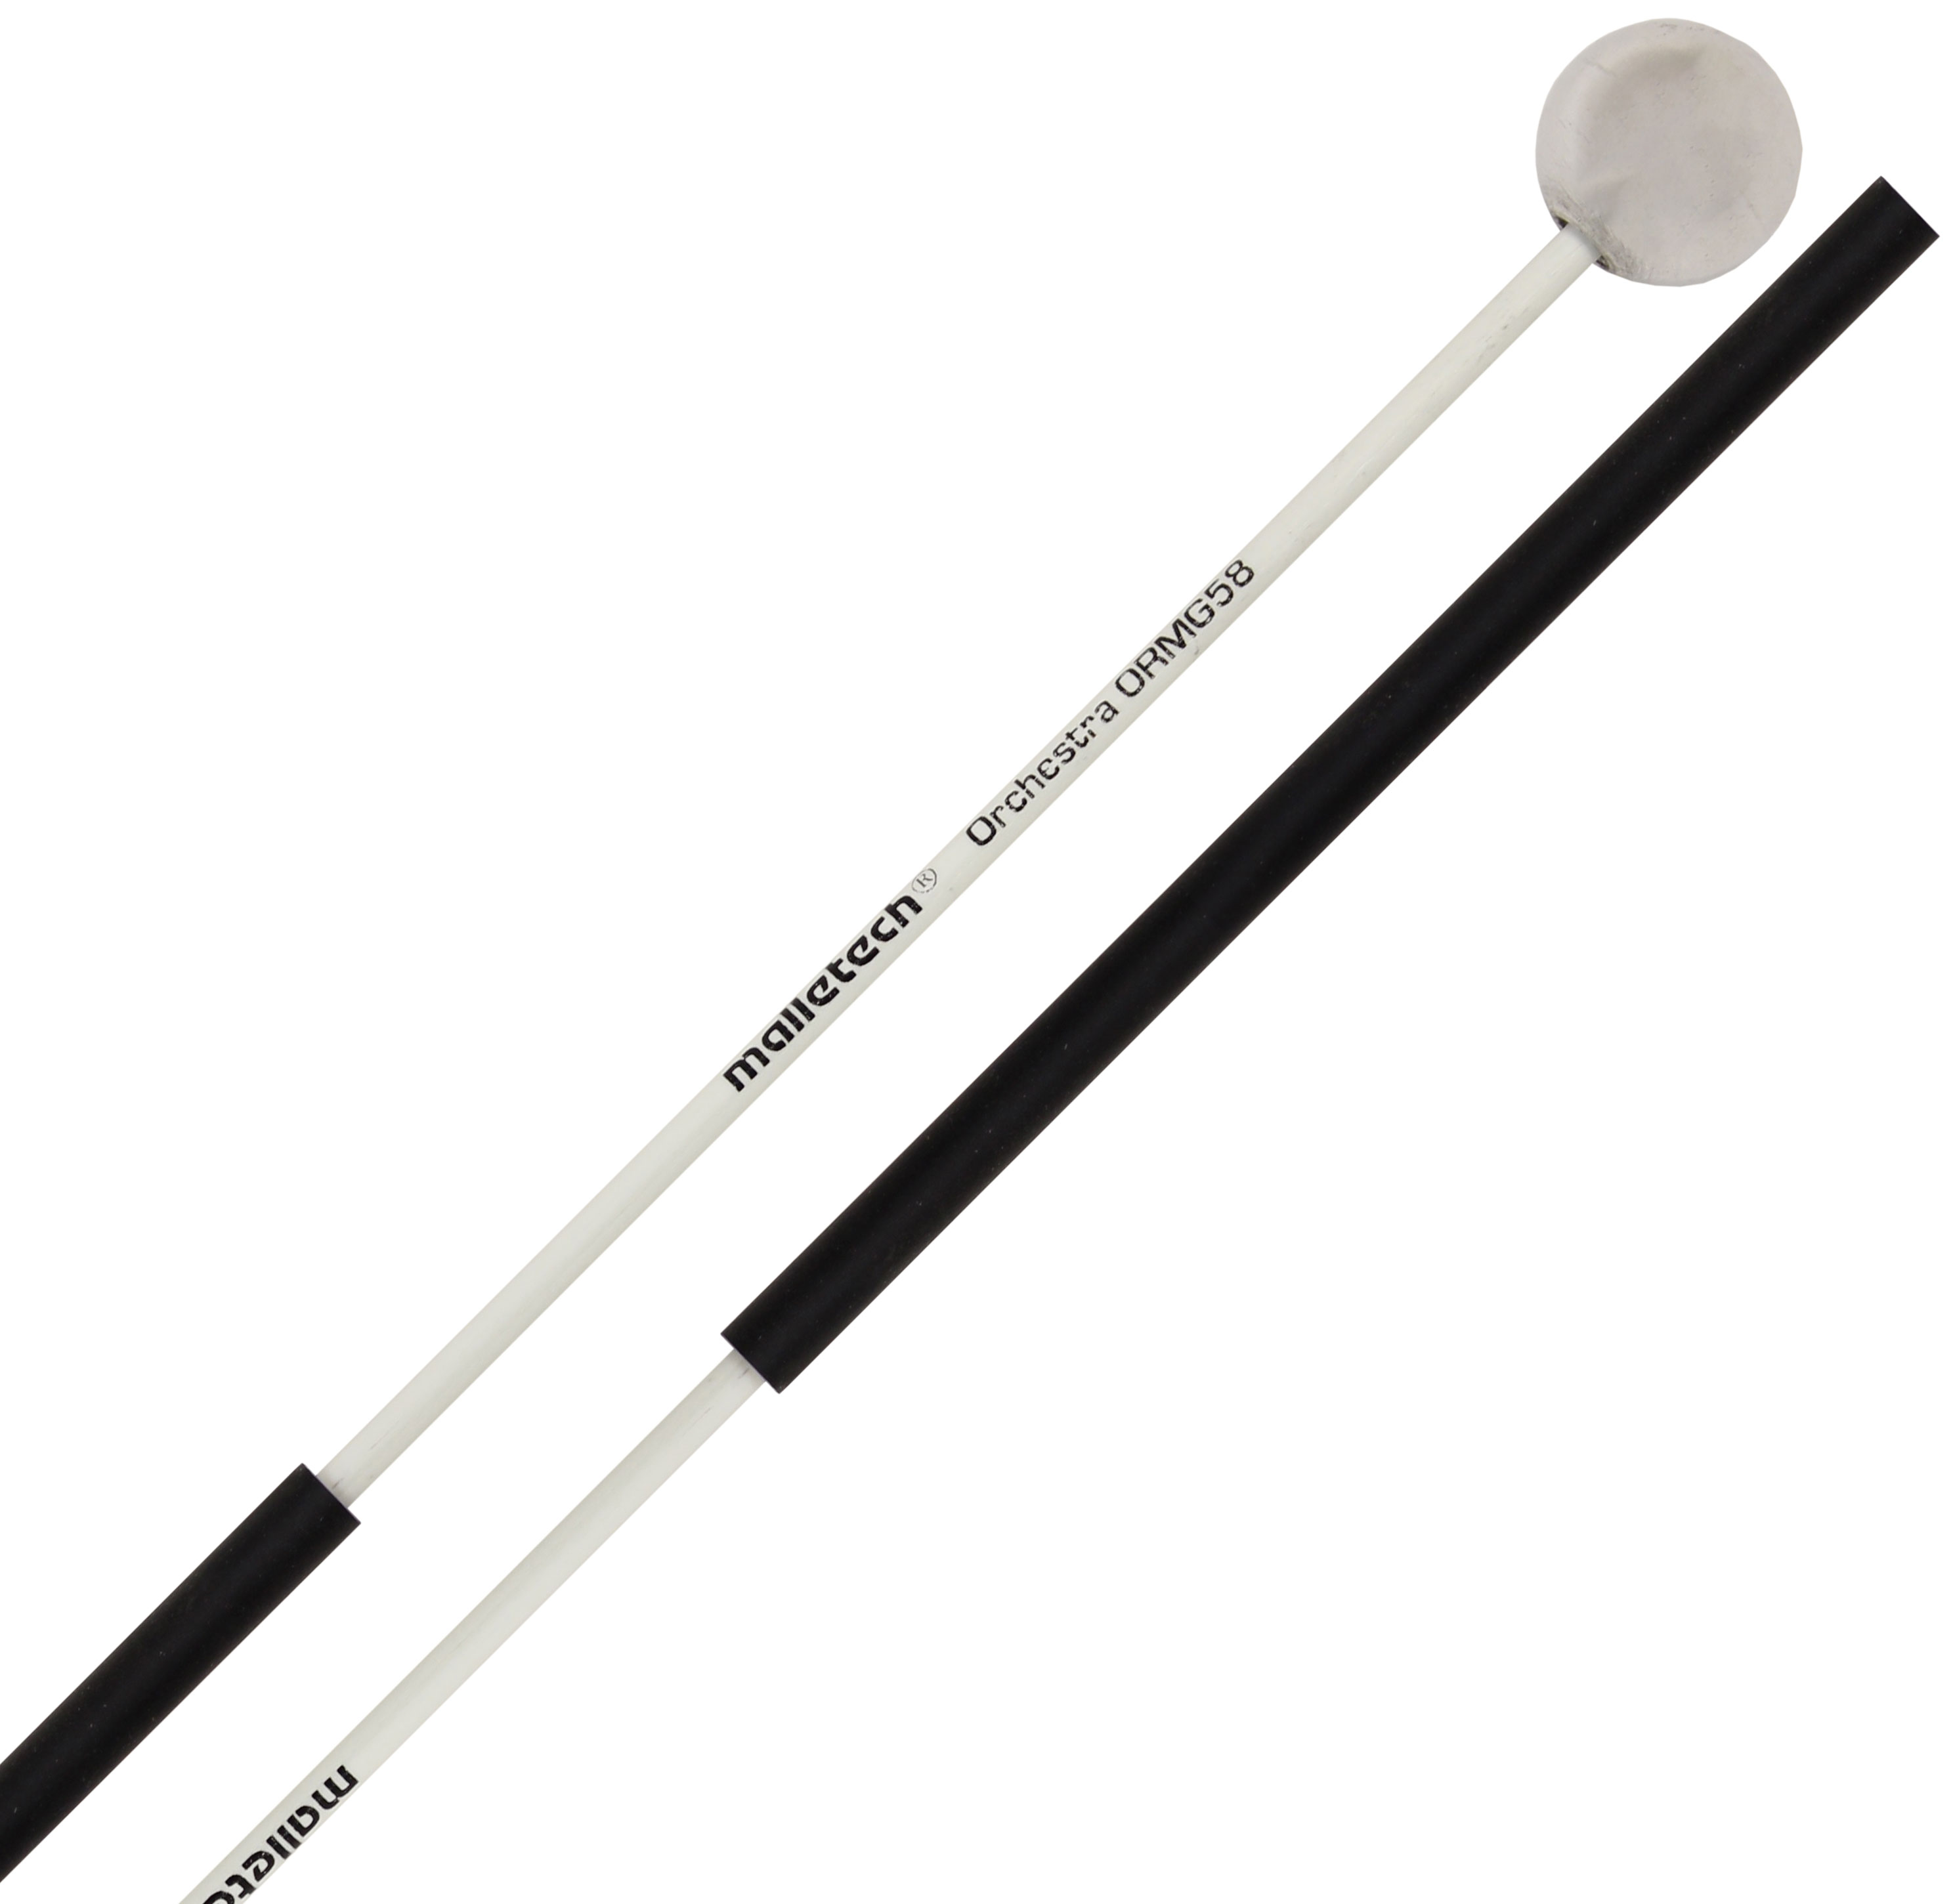 "Malletech Orchestral Series 3/4"" Mini-Glock Mallets with Fiberglass Shafts"